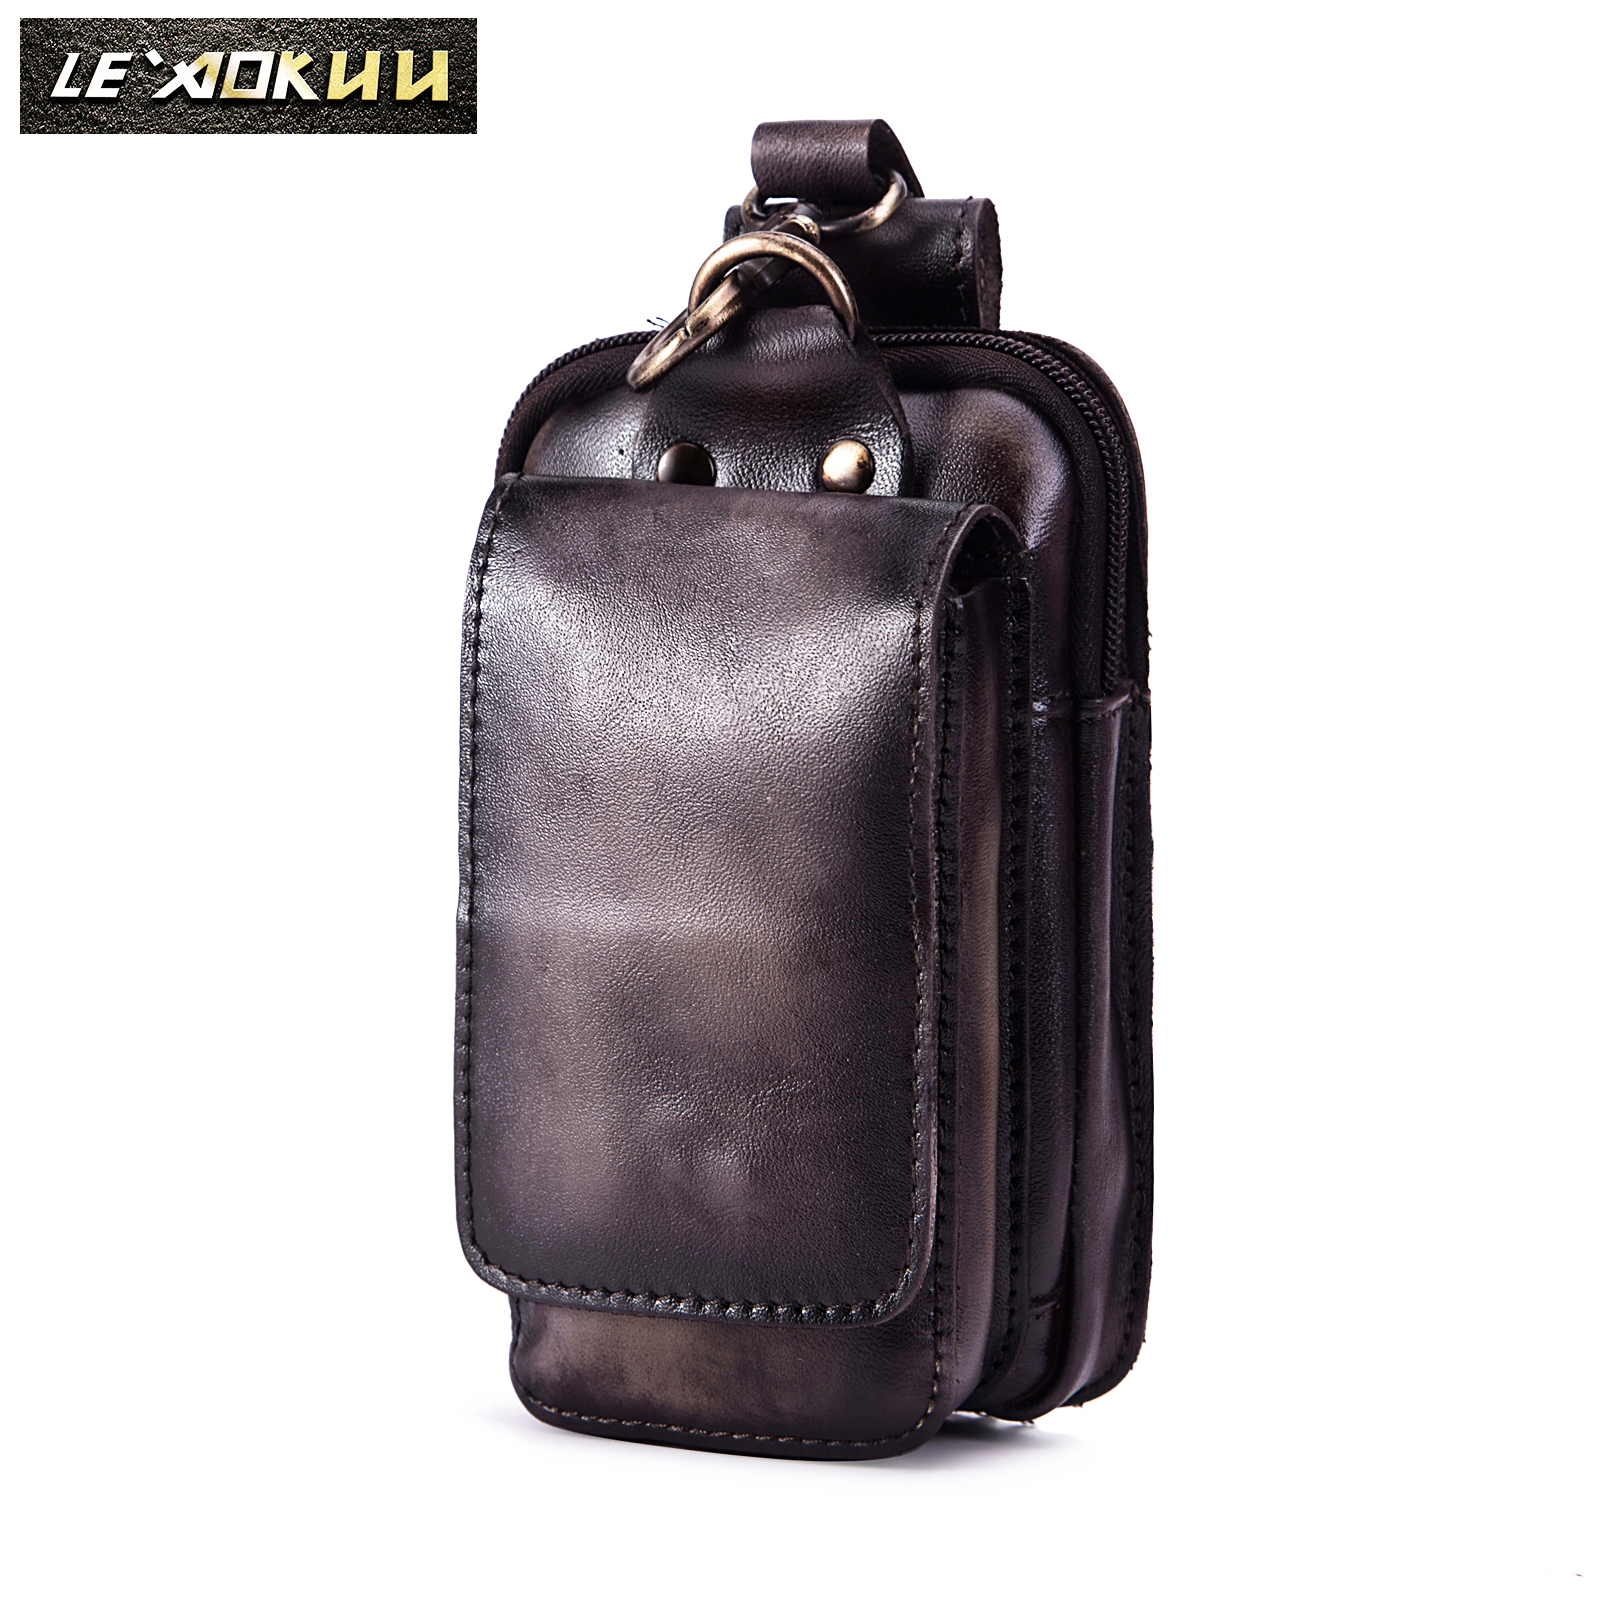 Real Leather Men Casual Design Small Cowhide Fashion Hook Bum Bag Fanny Waist Belt Pack Cigarette Case 6